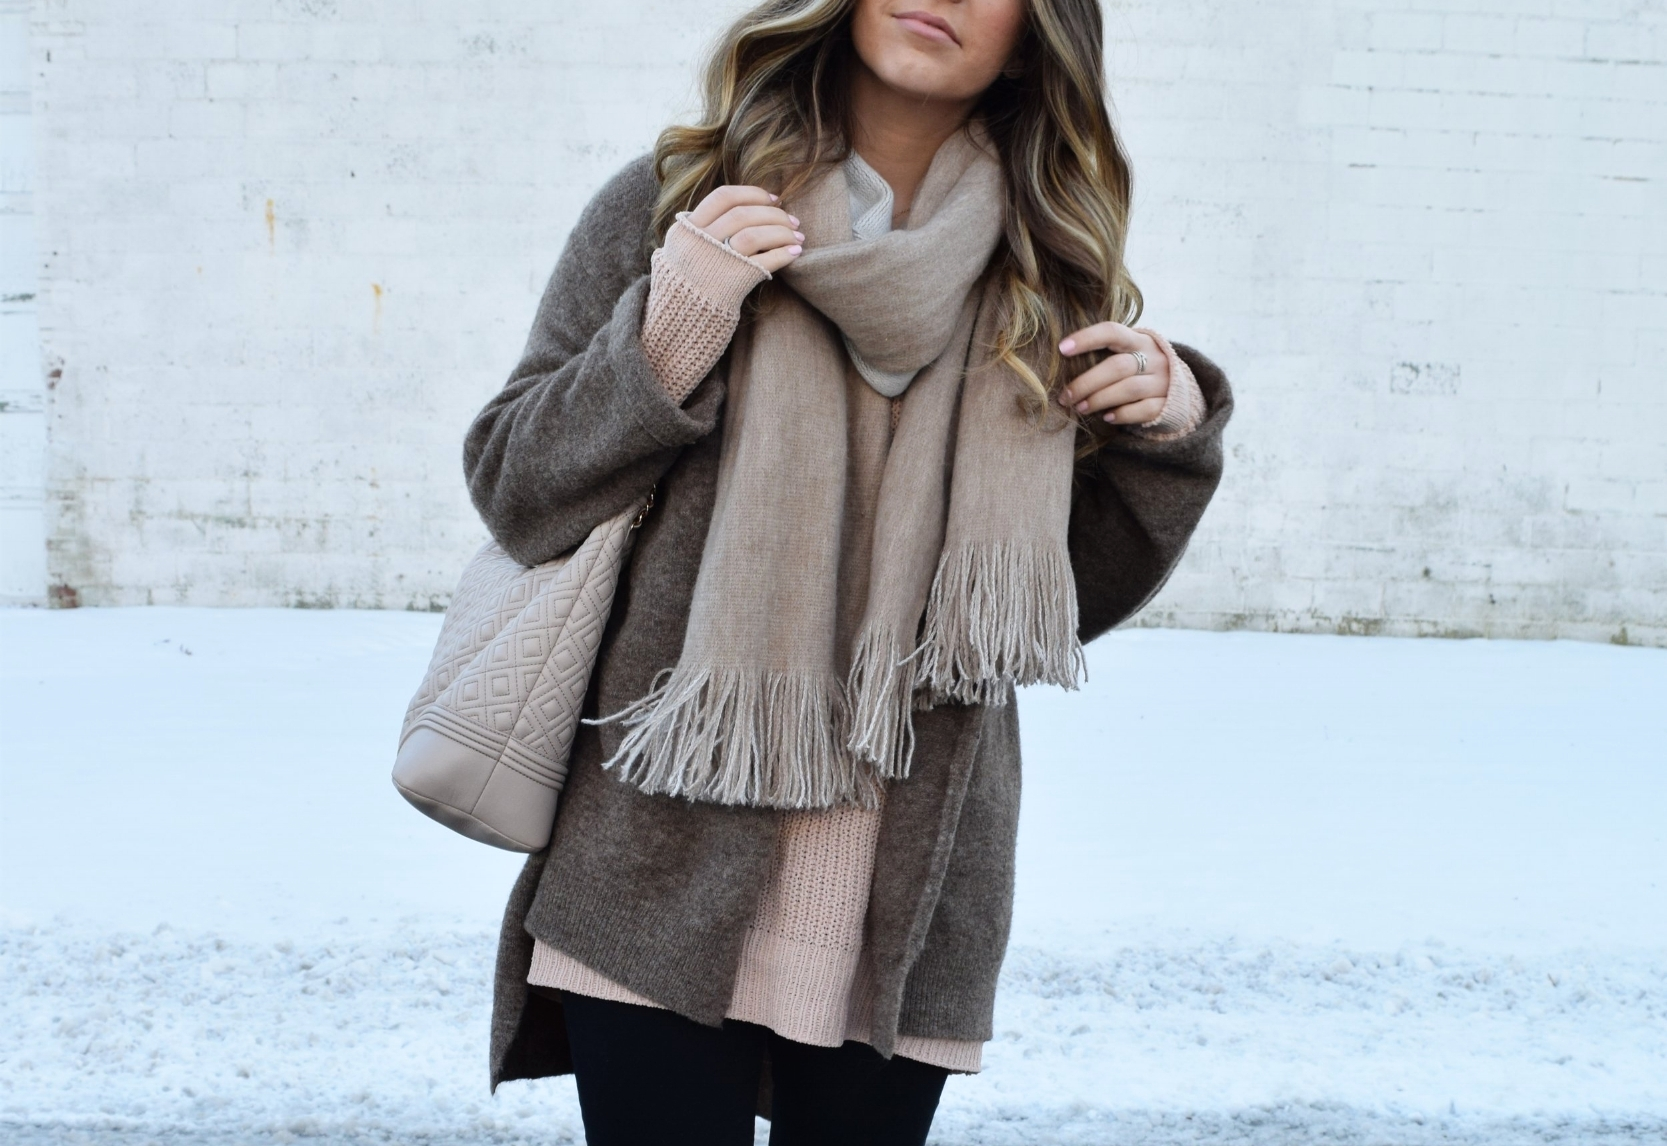 winter fashion, outfit idea, cozy sweater, cardigan, blanket scarf